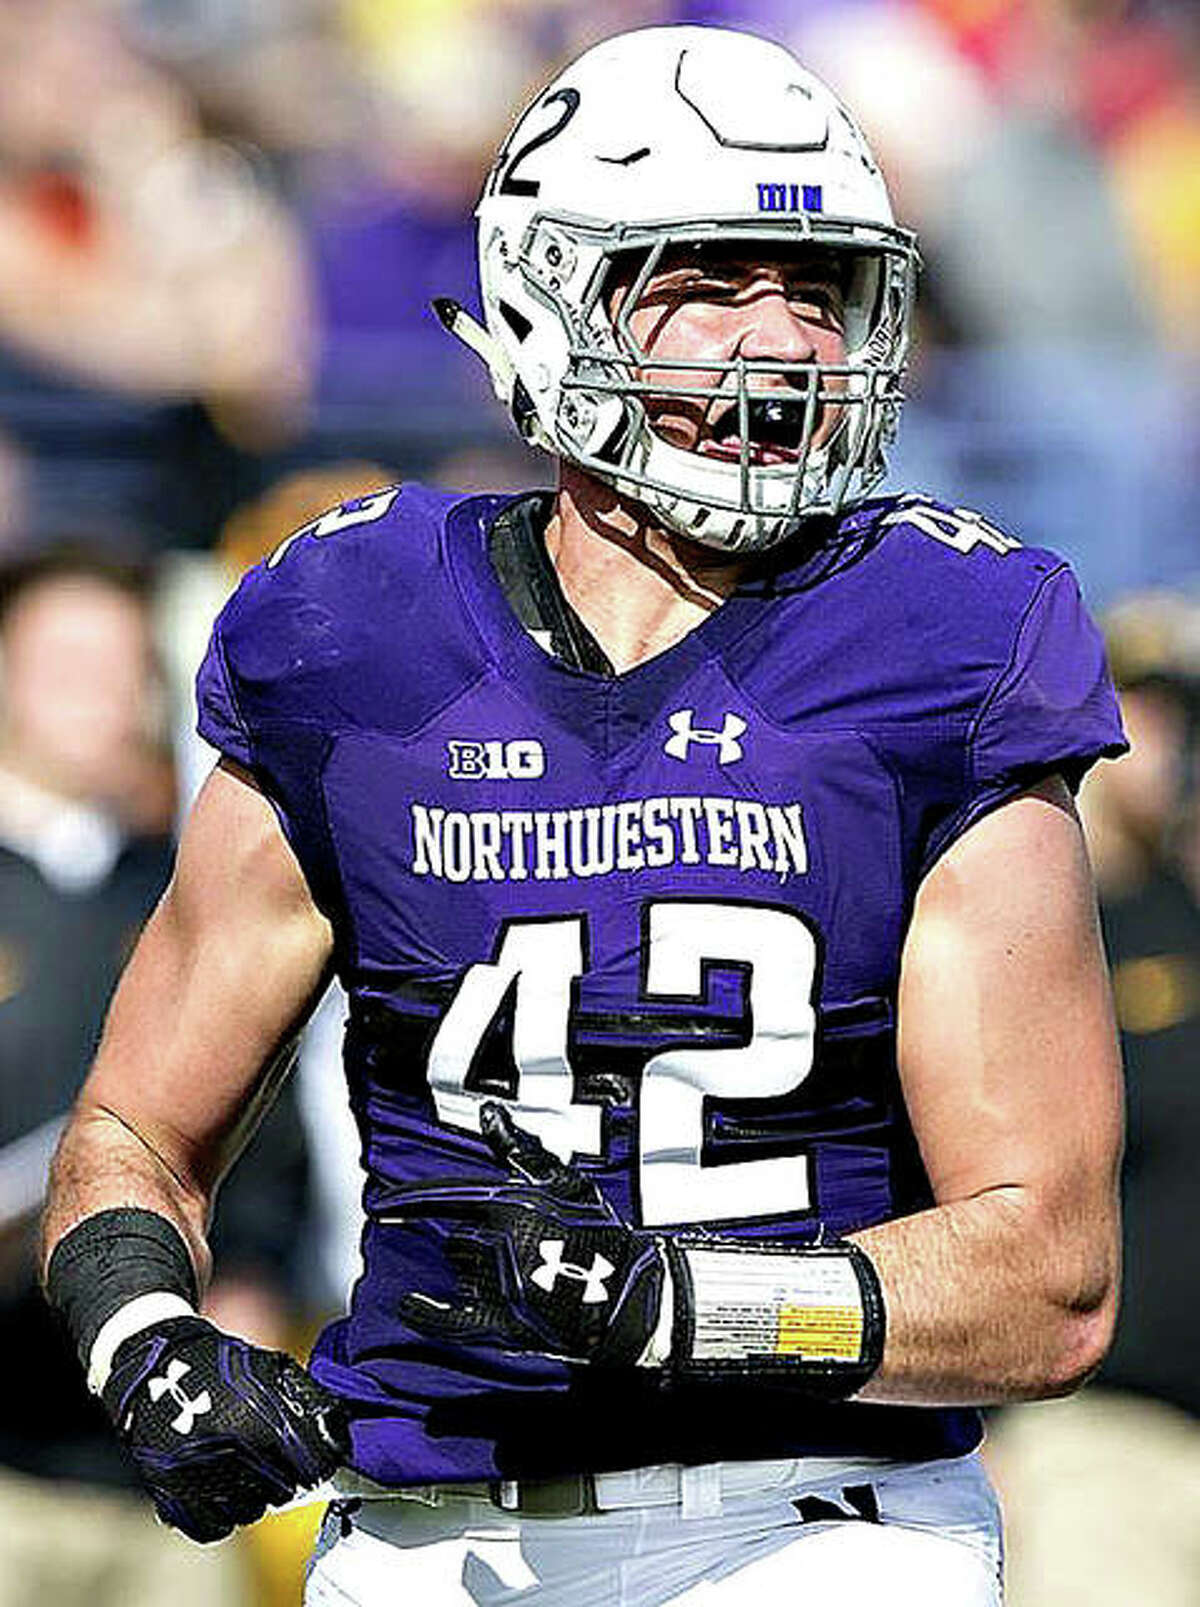 Jacksonville High School graduate Blake Hance, a Northwestern grad, could play in his first NFL game this week after the Browns signed him to their active roster last weekend.